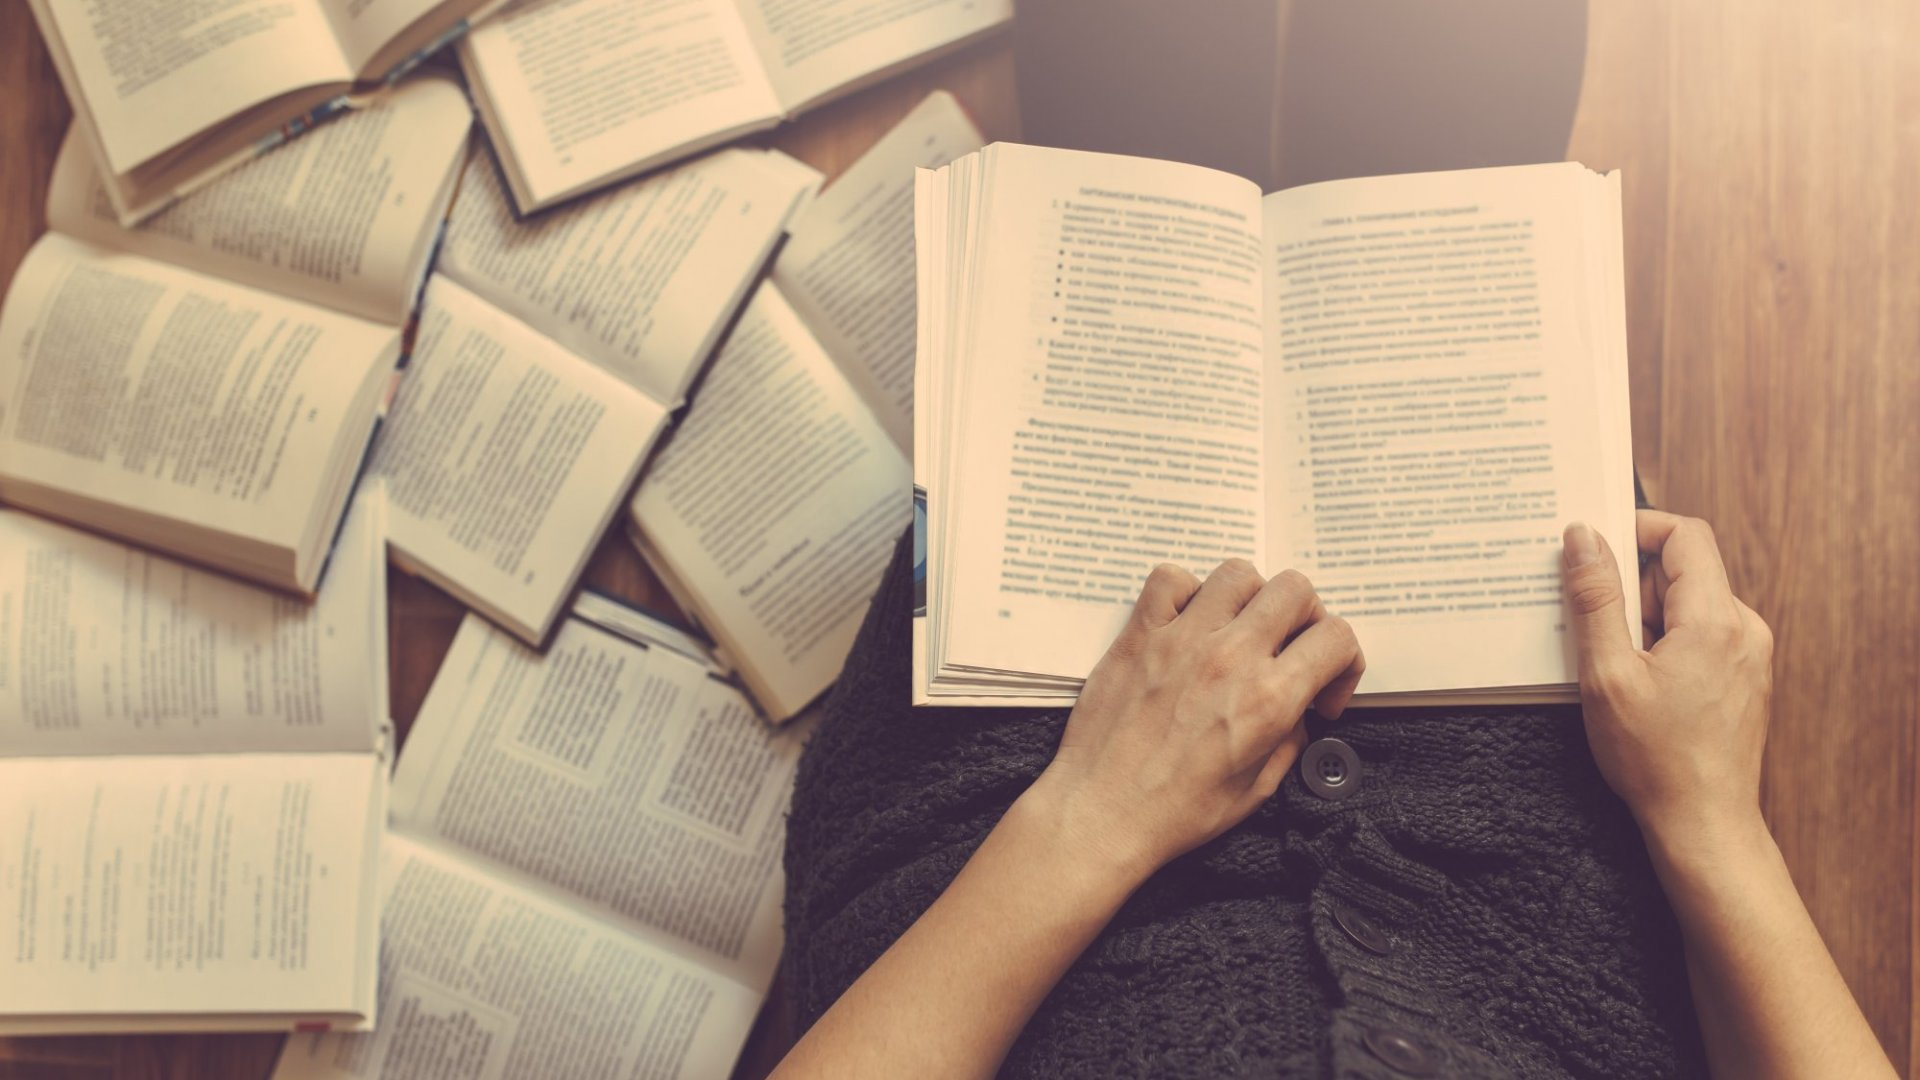 This Is Why You Should Read More Books, According to 2 Deep Thinkers on the Subject